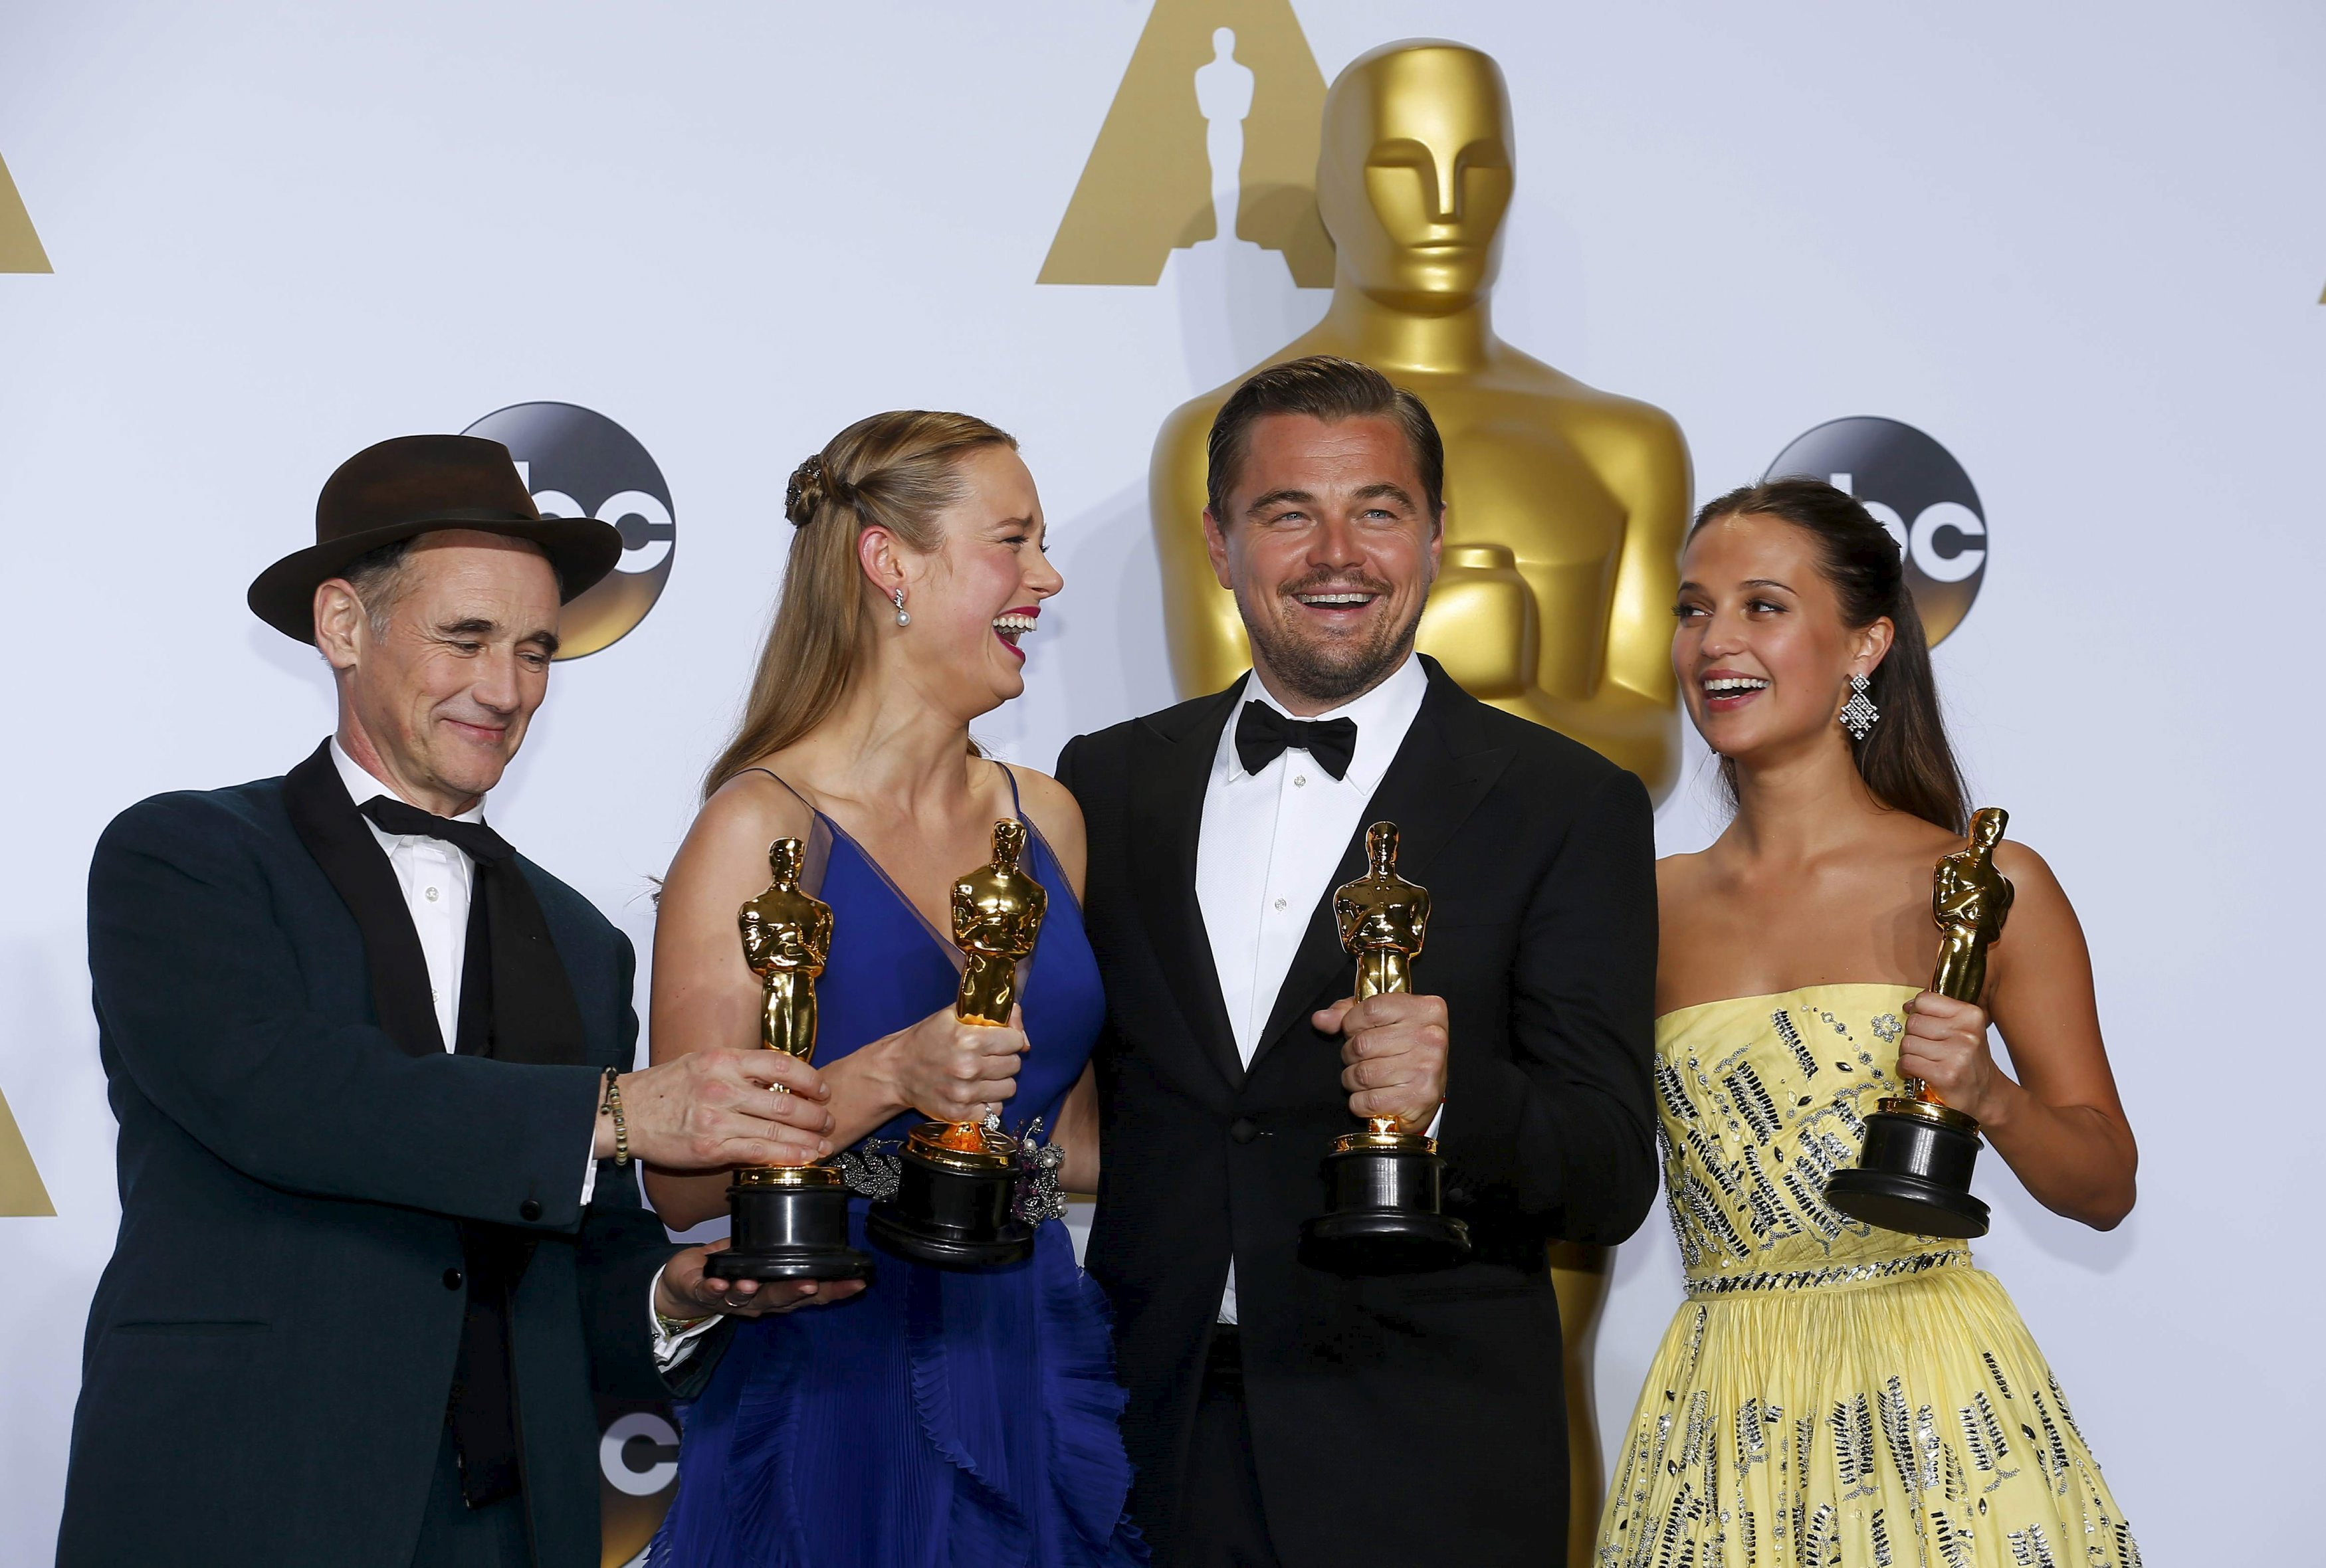 Oscar winners for Best Supporting Actor Mark Rylance, Best Actress Brie Larson, Best Actor Leonardo DiCaprio and Best Supporting Actress Alicia Vikander (L-R) pose backstage at the 88th Academy Awards in Hollywood, California February 28, 2016.   REUTERS/Mike Blake      TPX IMAGES OF THE DAY